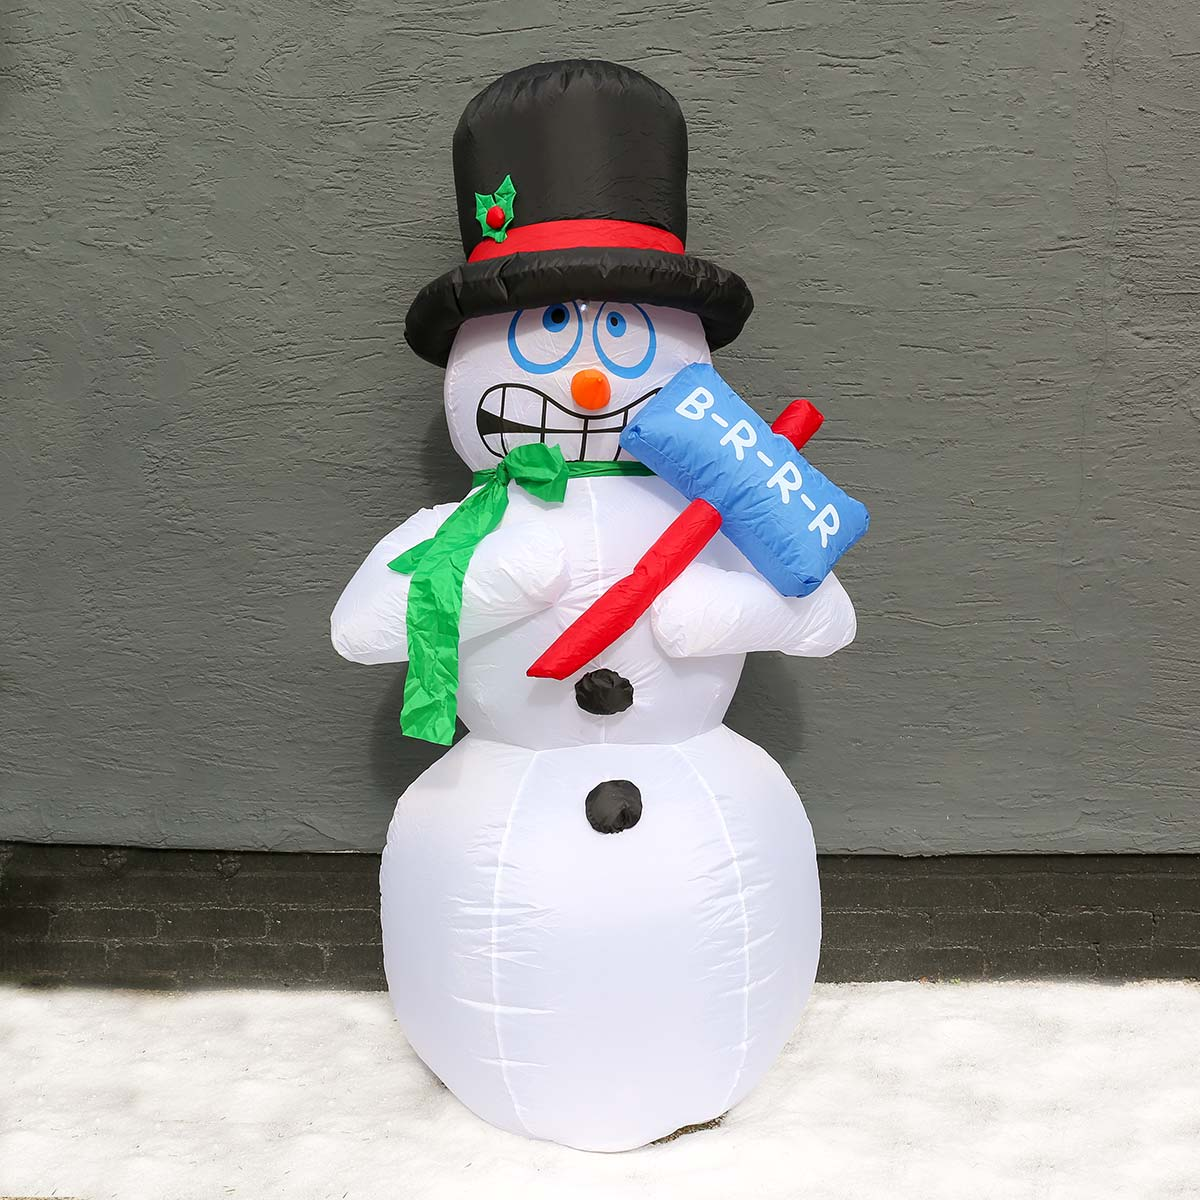 1 8m Animated Shivering Snowman Inflatable Figure